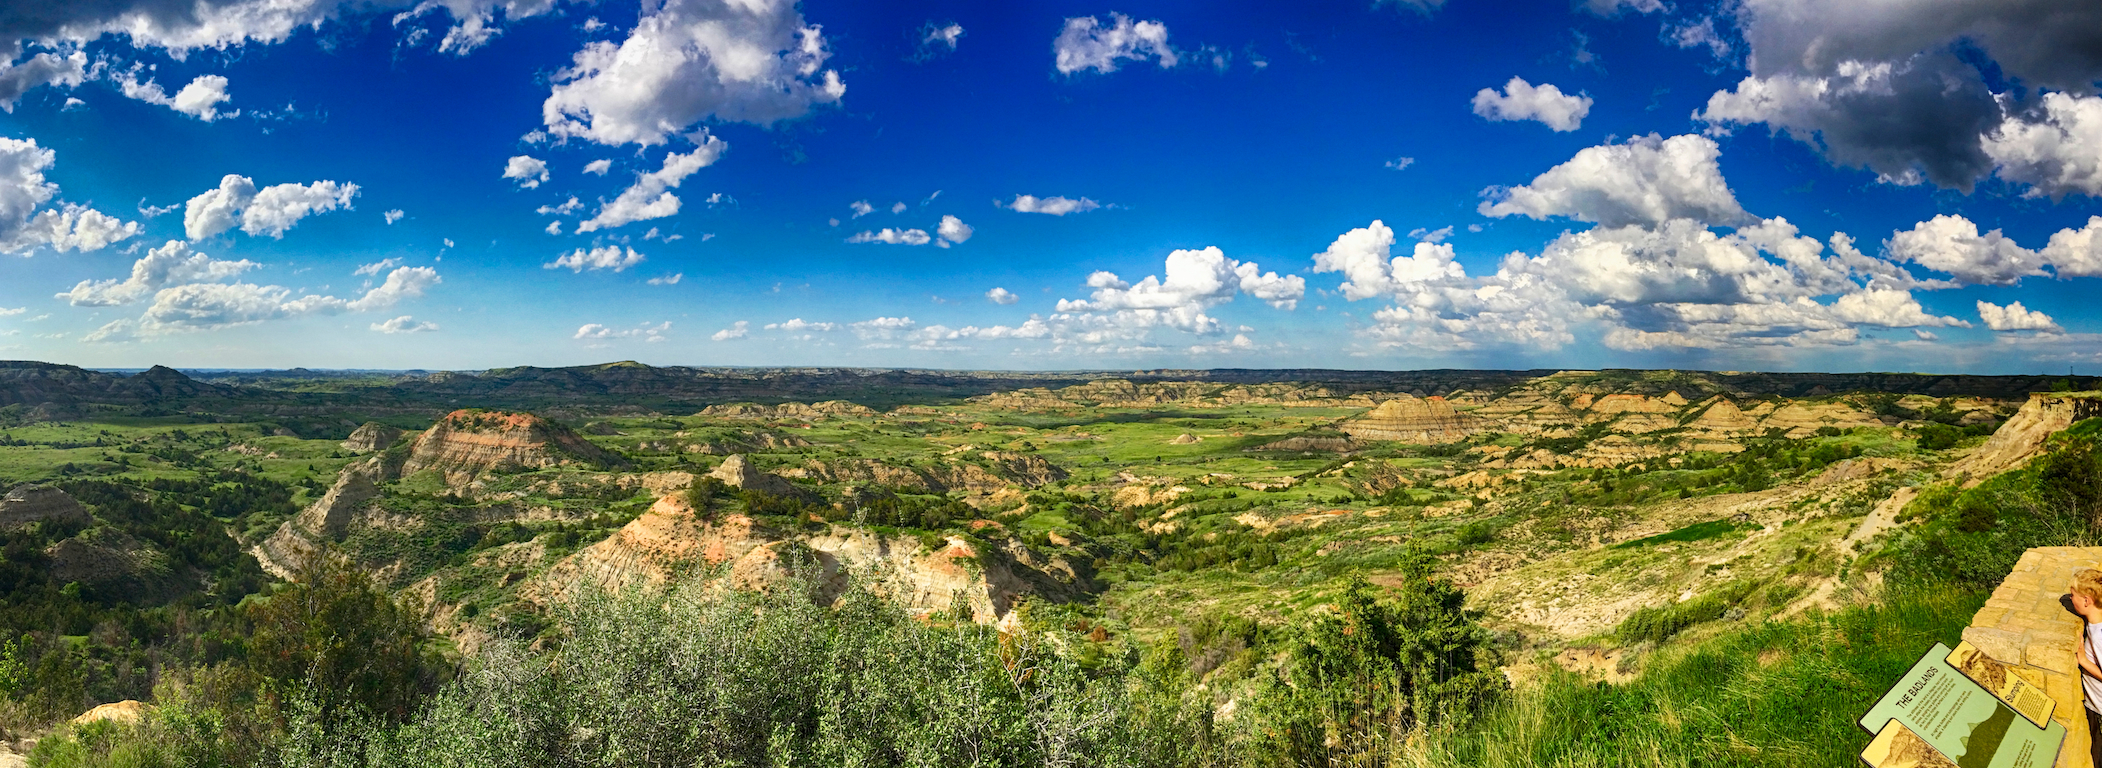 Painted Canyon Theodore Roosevelt National Park, N